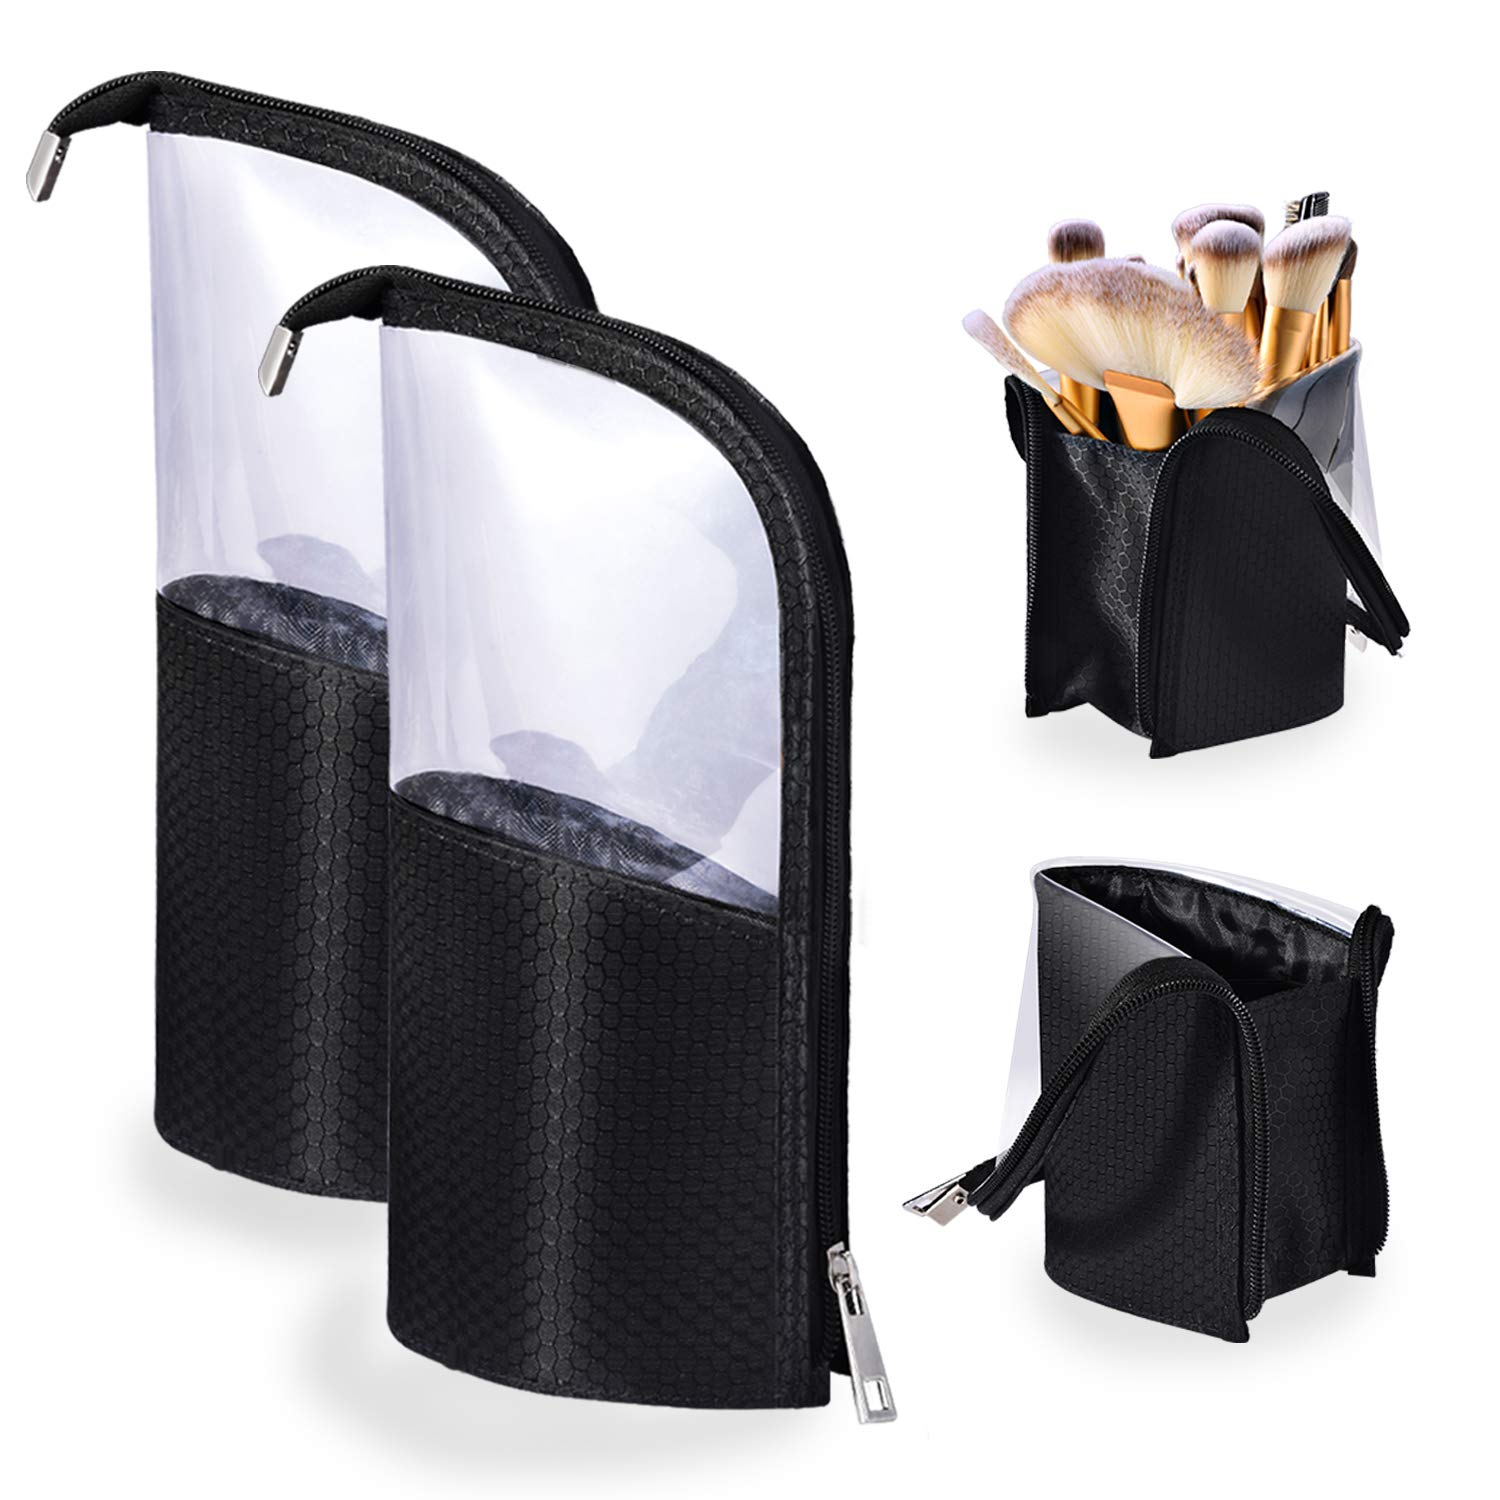 Travel Make-up Brush Cup Holder Organizer Bag 2-Pack, Pencil Pen Case for Desk, Clear Plastic Cosmetic Zipper Pouch, Portable Waterproof Dust-Free Stand-Up Small Toiletry Stationery Bag Divider, Black